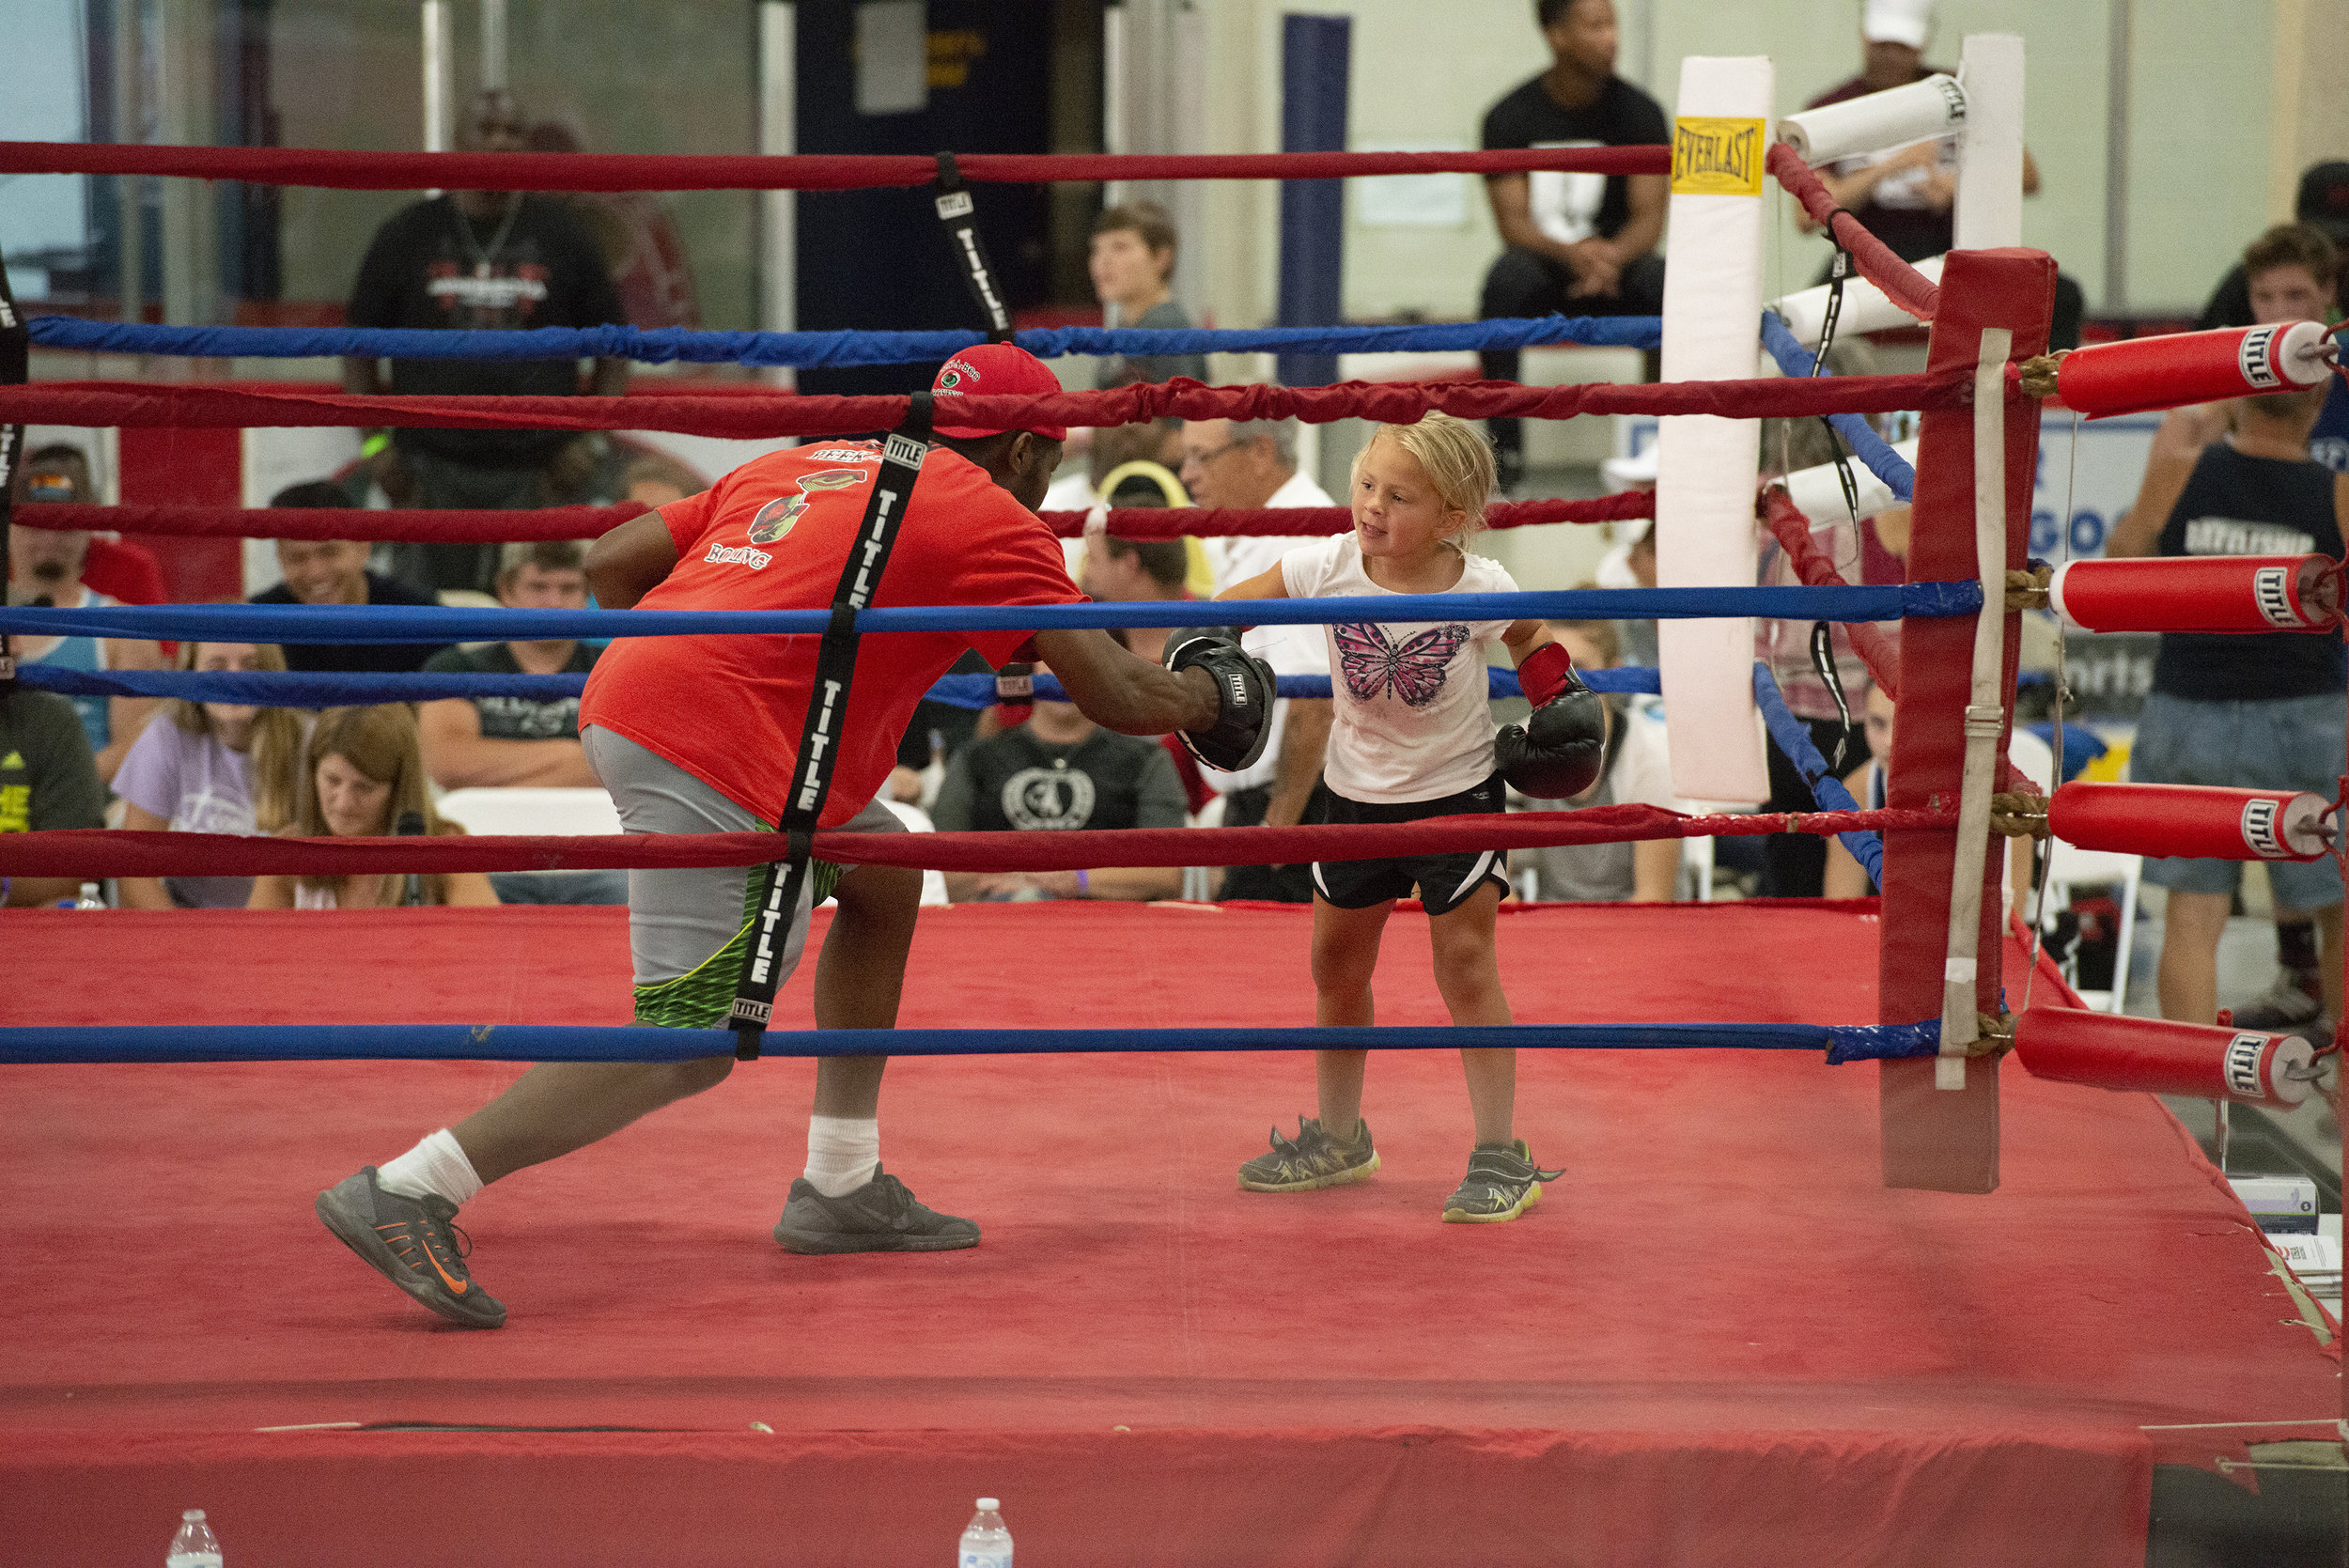 Boxing_Show5_Reverie_photography_Peek-a-Boo_Boxing_Gym_River Falls.jpg